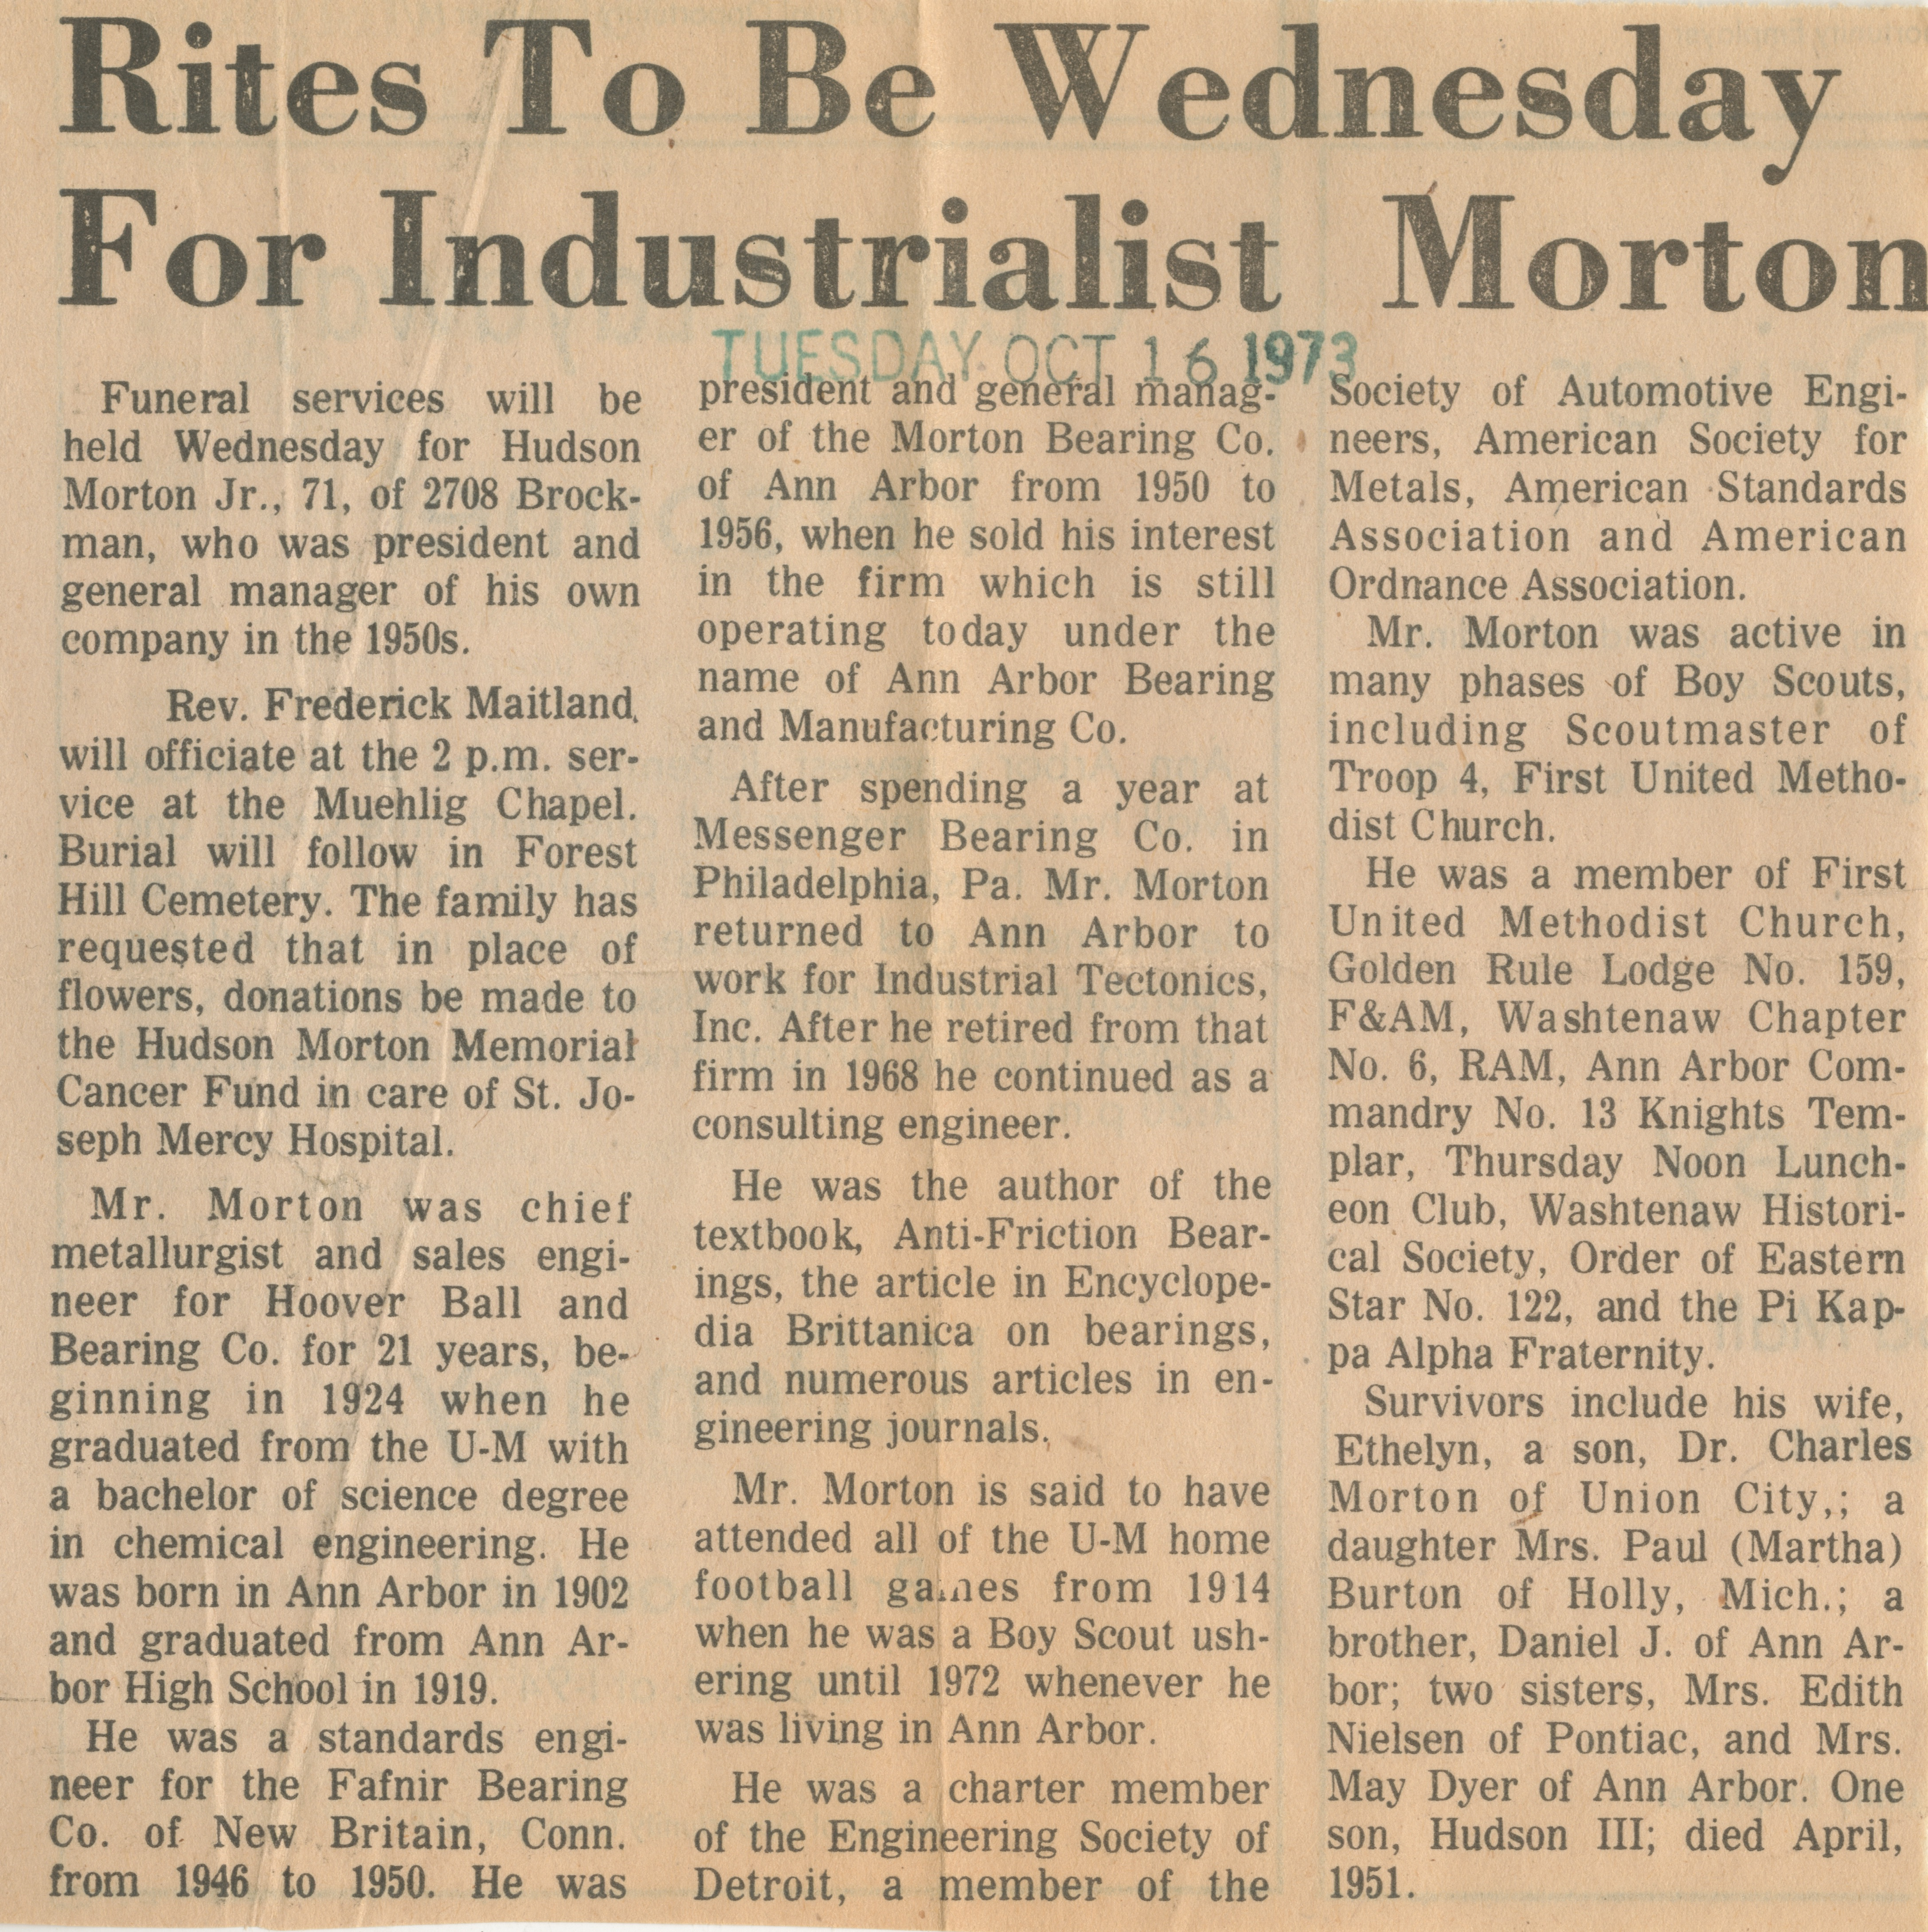 Rites To Be Wednesday For Industrialist Morton image